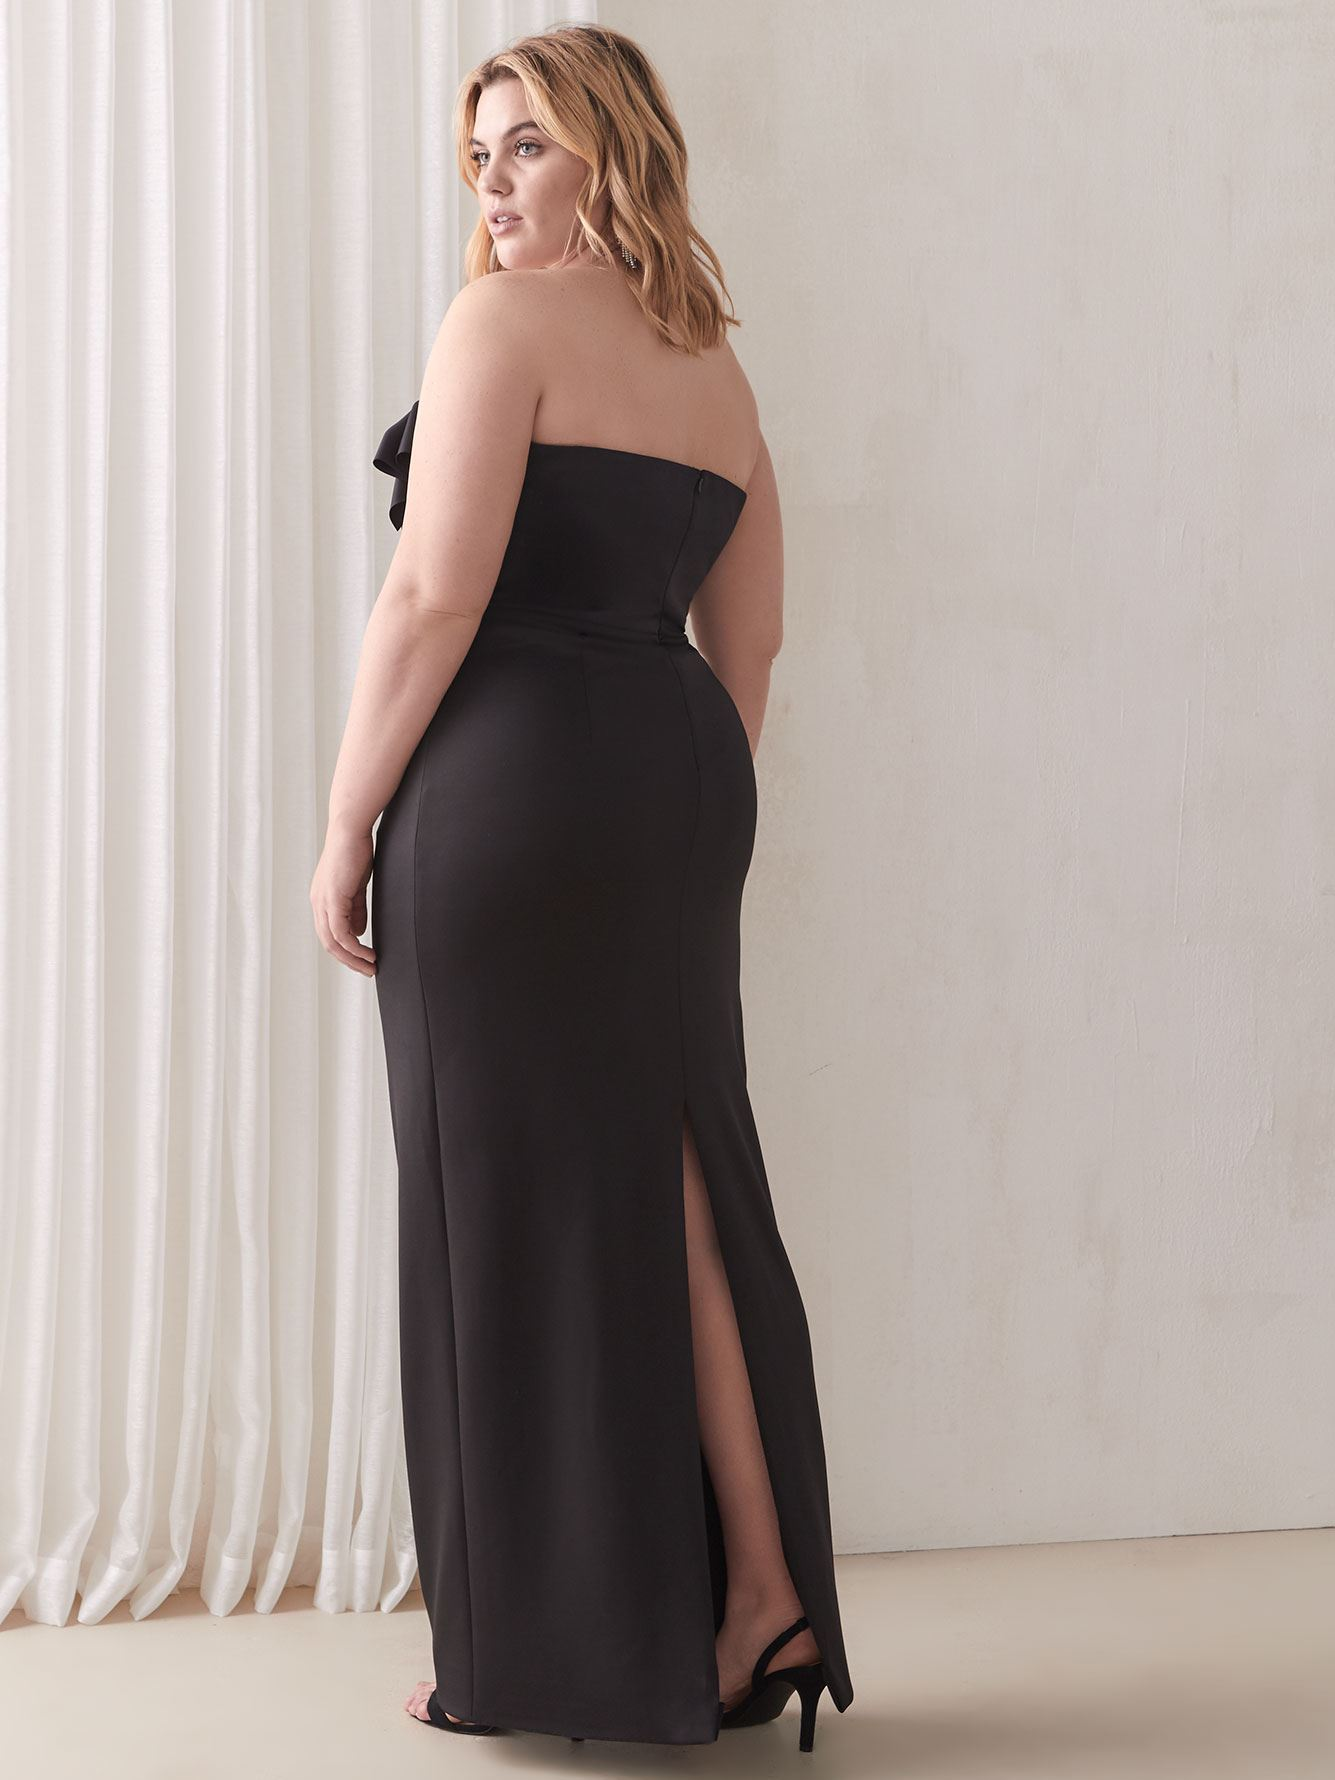 Divina Long Black Gown - Black Halo